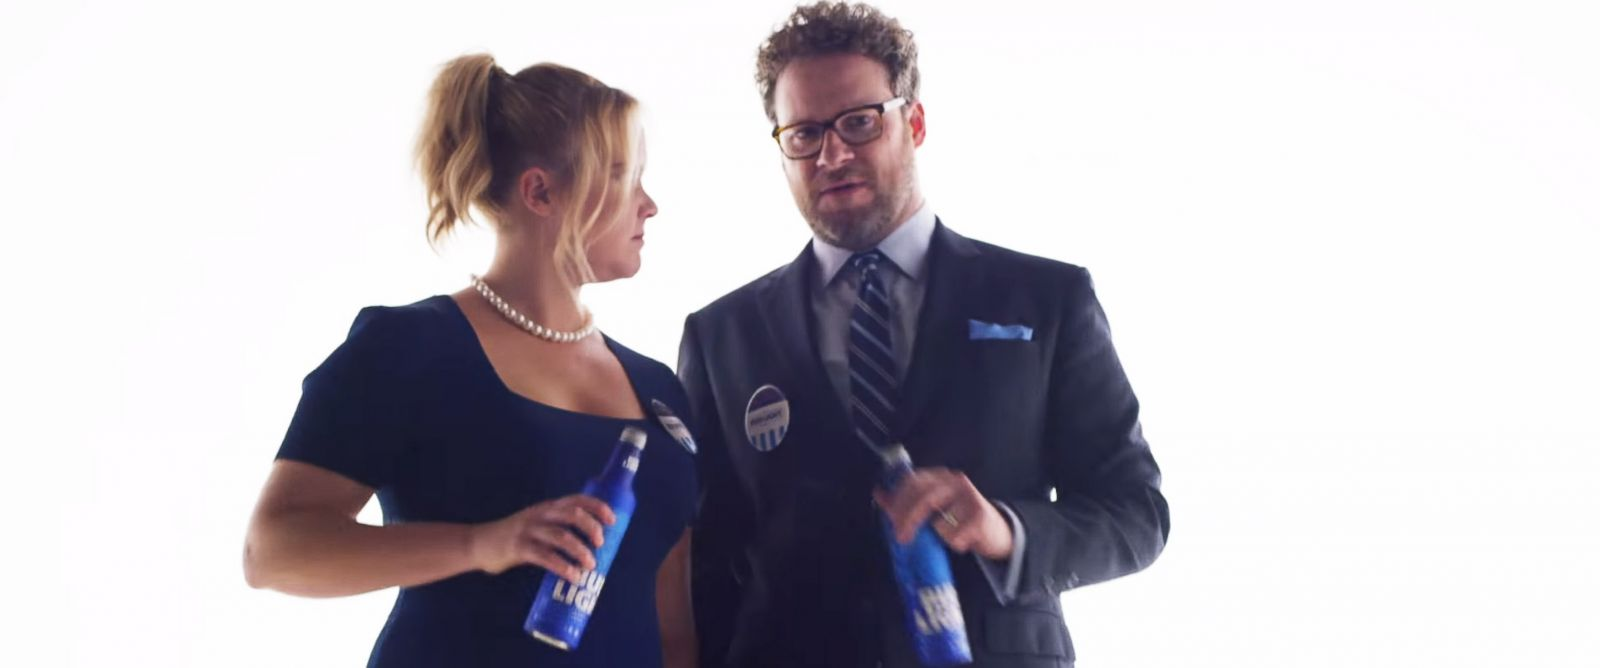 9 noteworthy super bowl commercials bud lights ability to include perhaps two of the funniest celebrities we all know and love and turn it into something so genius i love it aloadofball Gallery